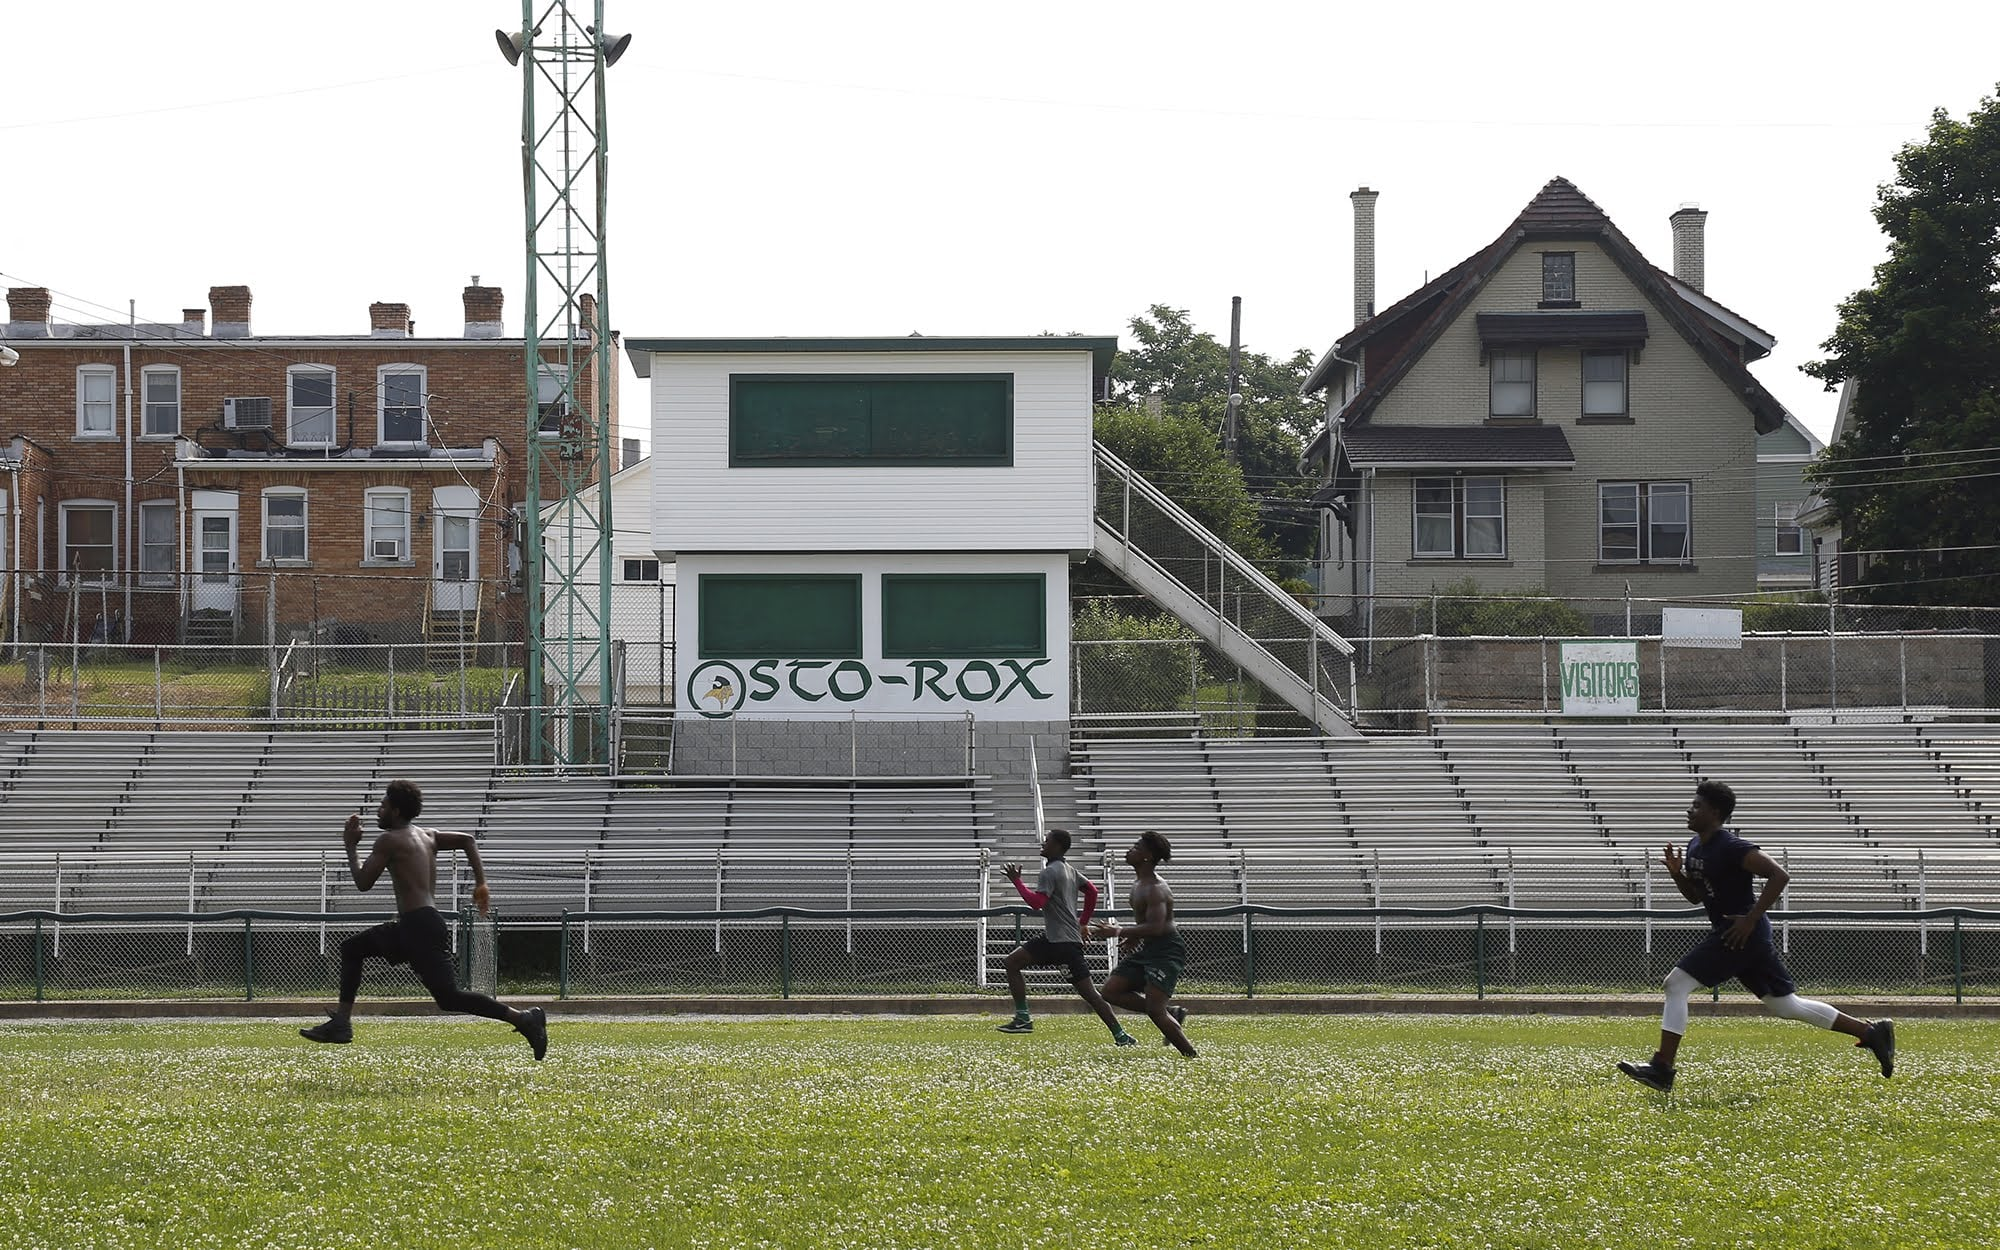 Members of the Sto-Rox football team run across the school's football field in June.